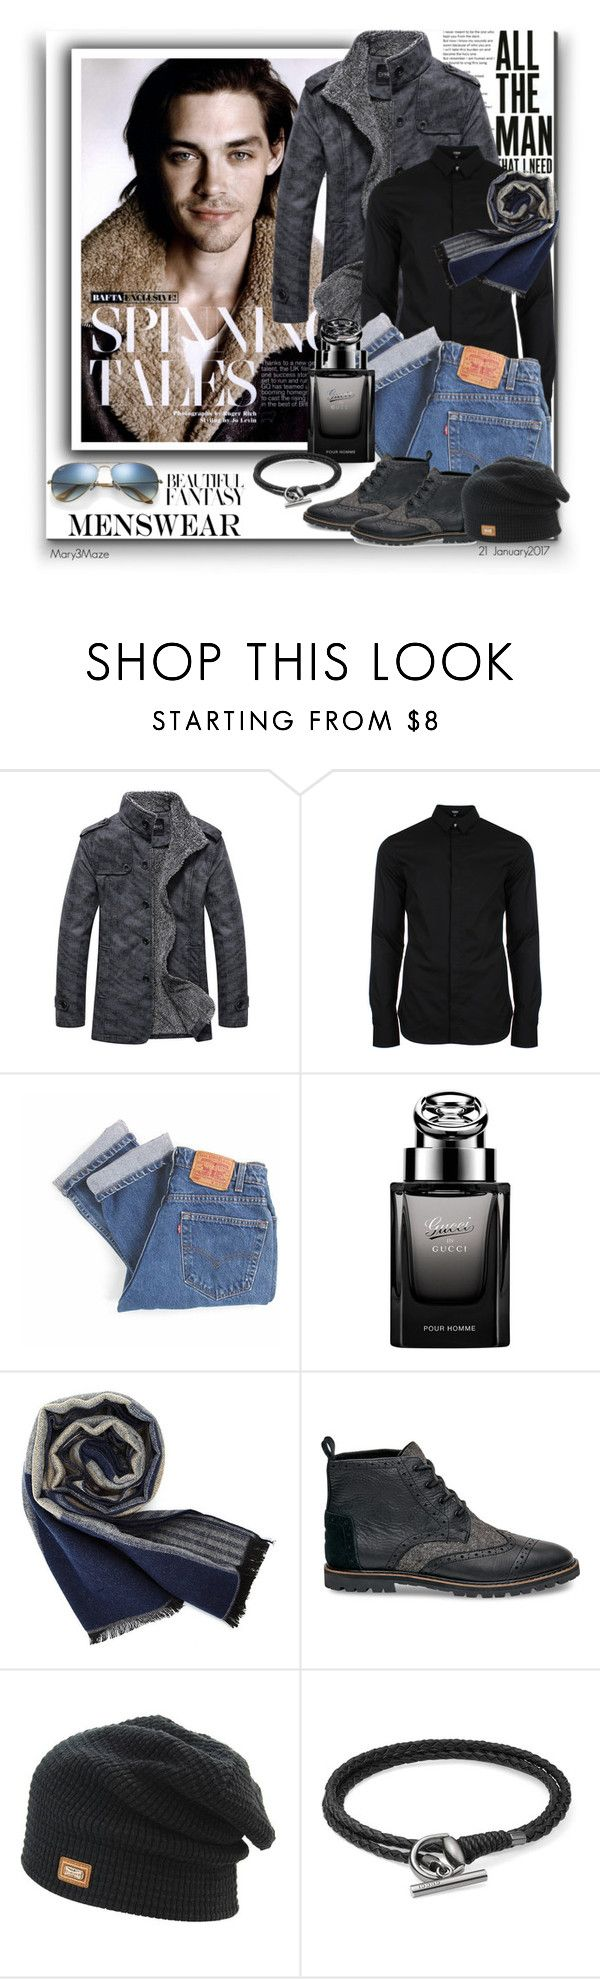 """Mens Fashion - Tom Payne"" by octobermaze ❤ liked on Polyvore featuring Versus, Levi's, Gucci, Ray-Ban, men's fashion and menswear"